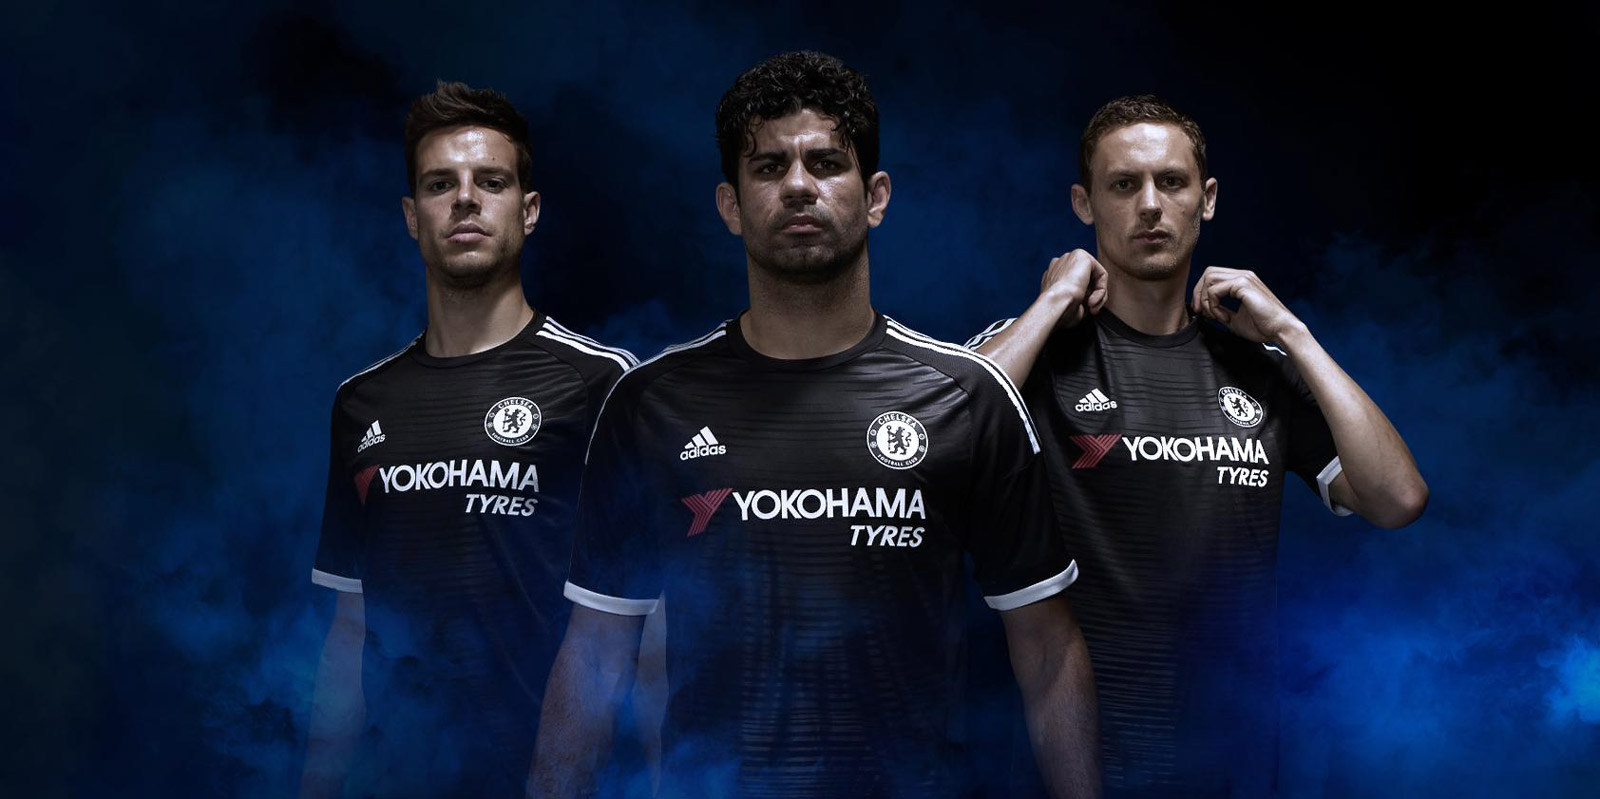 Chelsea The Black 15 16 Third Kit Jersey Have A Nice Day Nicedaysports August 23 2015 0 Comments